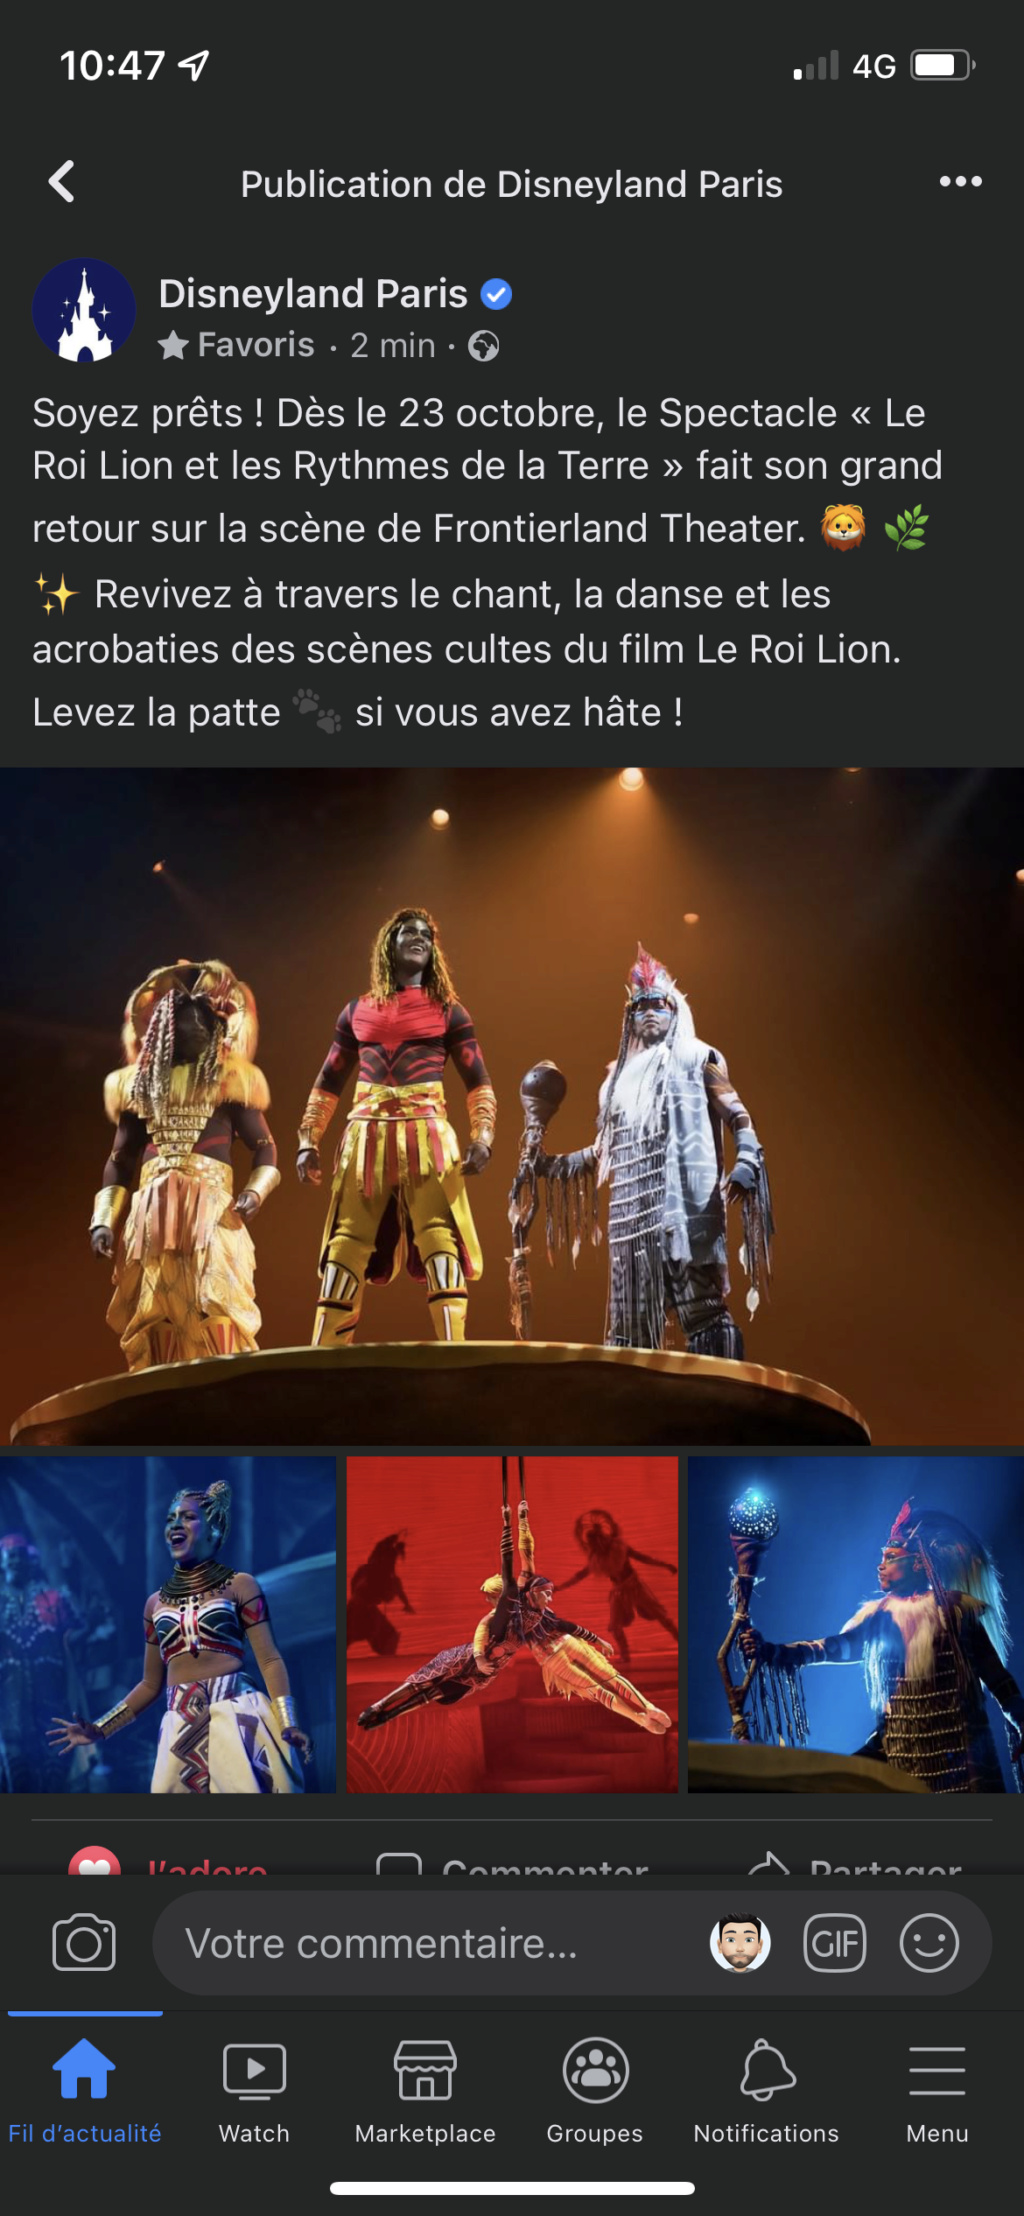 Frontierland Theater [Frontierland - 2019] - Page 36 2bc01610